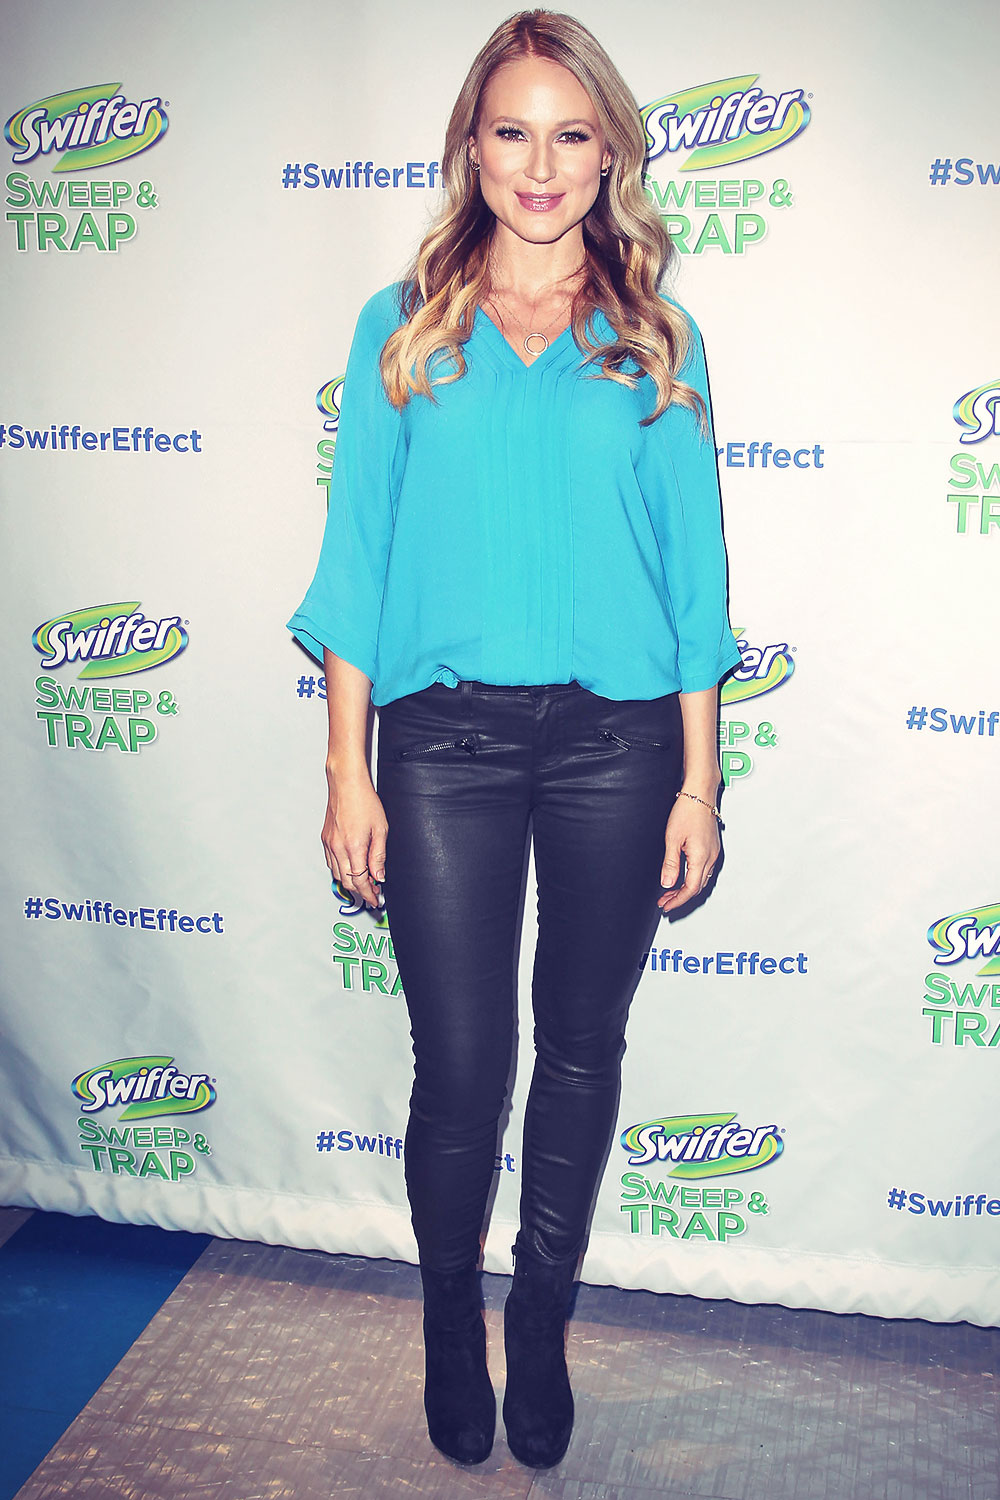 Jewel celebrates the Launch of Swiffer's New Sweep & Trap